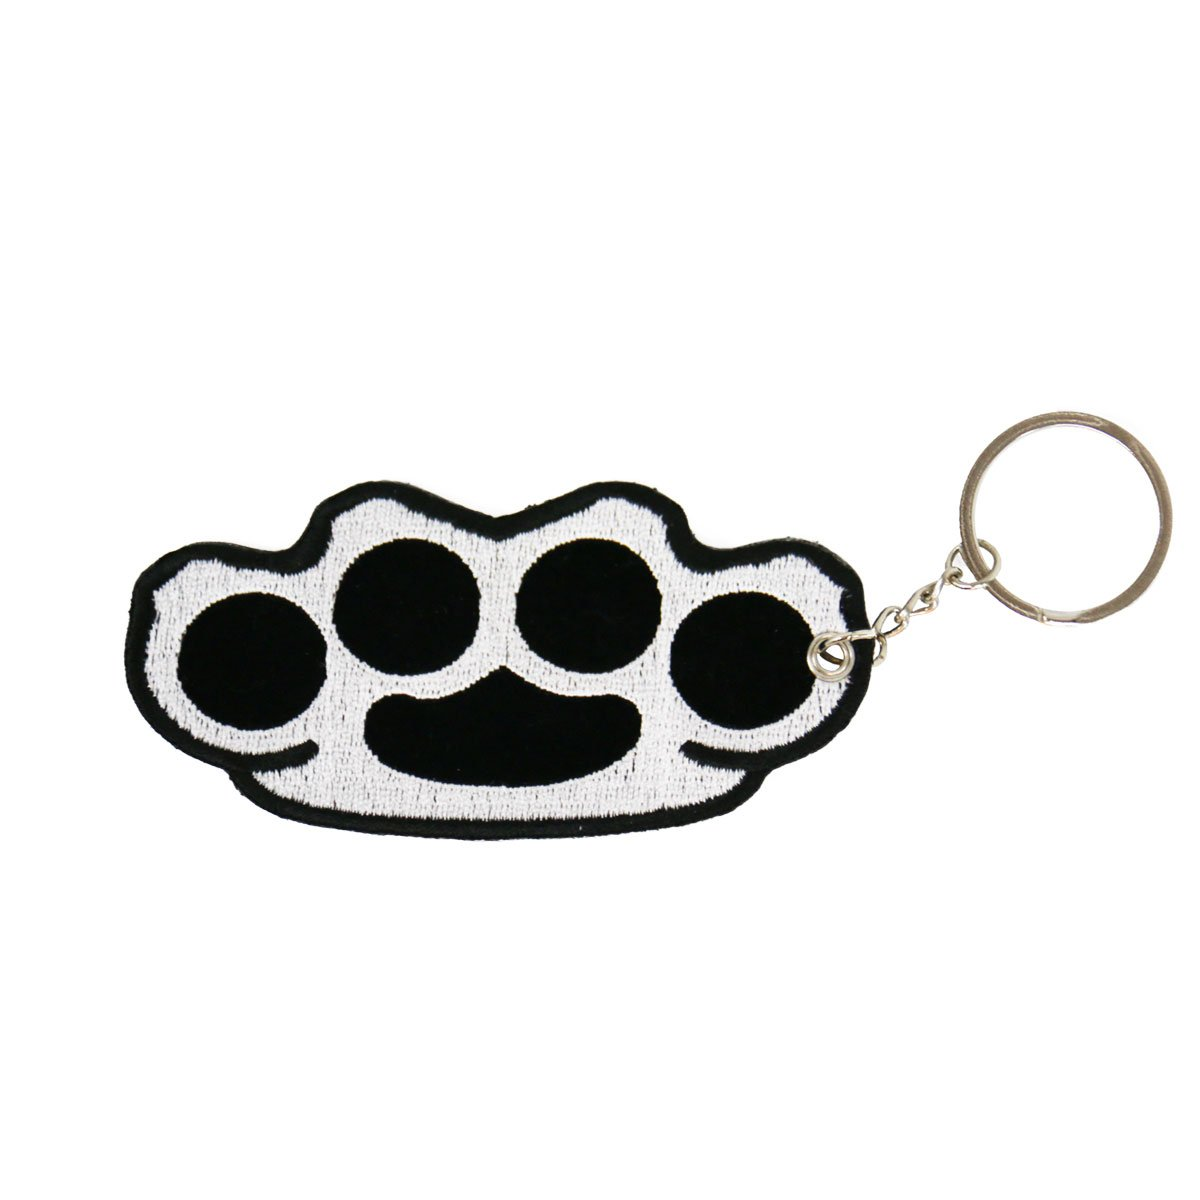 Hot Leathers KCH1029-23560 Brass Knuckles Embroided Key Chain